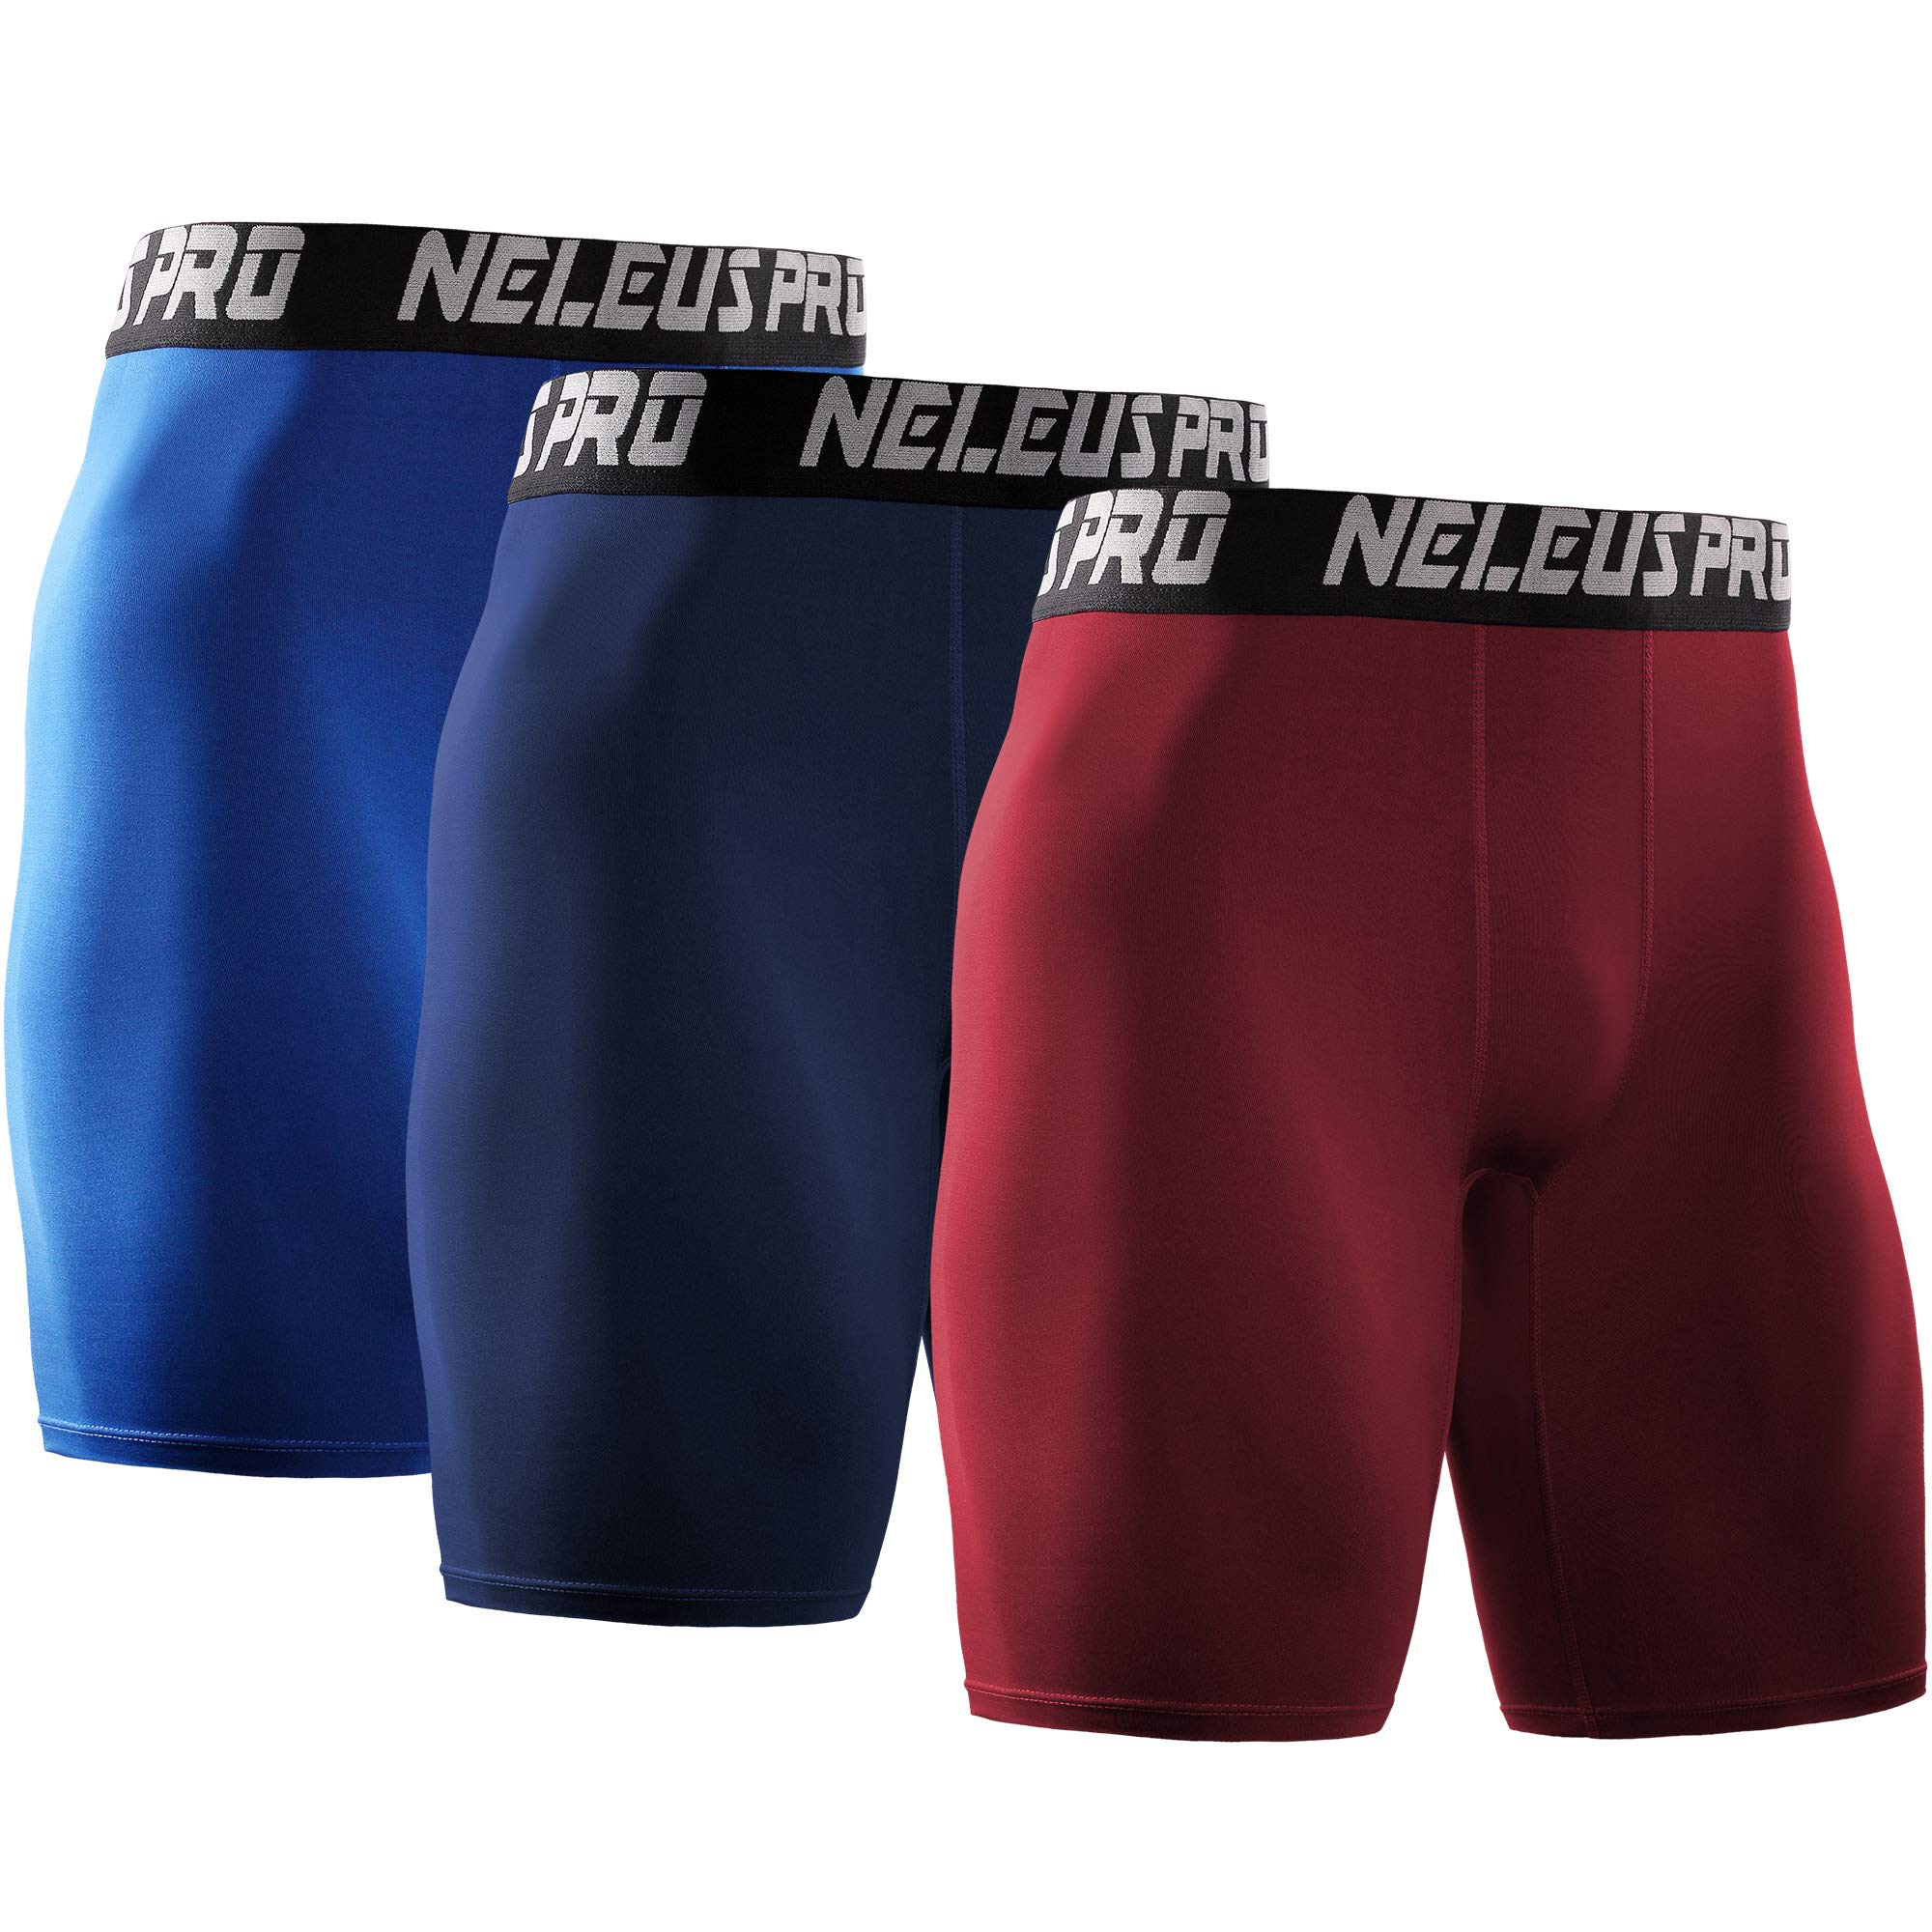 Neleus Men's 3 Pack Athletic Compression Short,6028,Blue,Navy,Red,US XS,EU S by Neleus